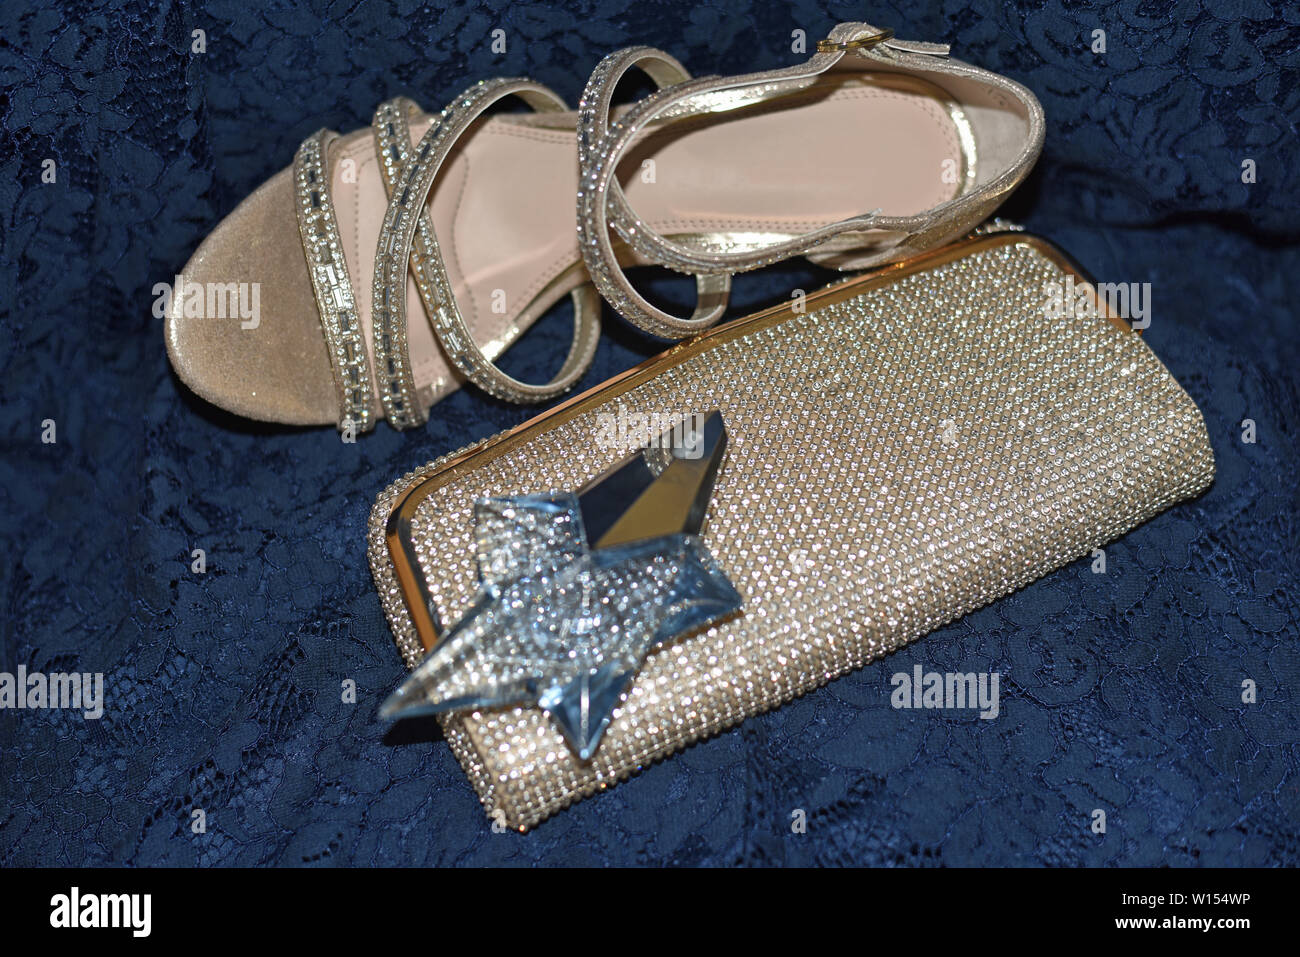 Heels, Clutch and Perfume - Stock Image